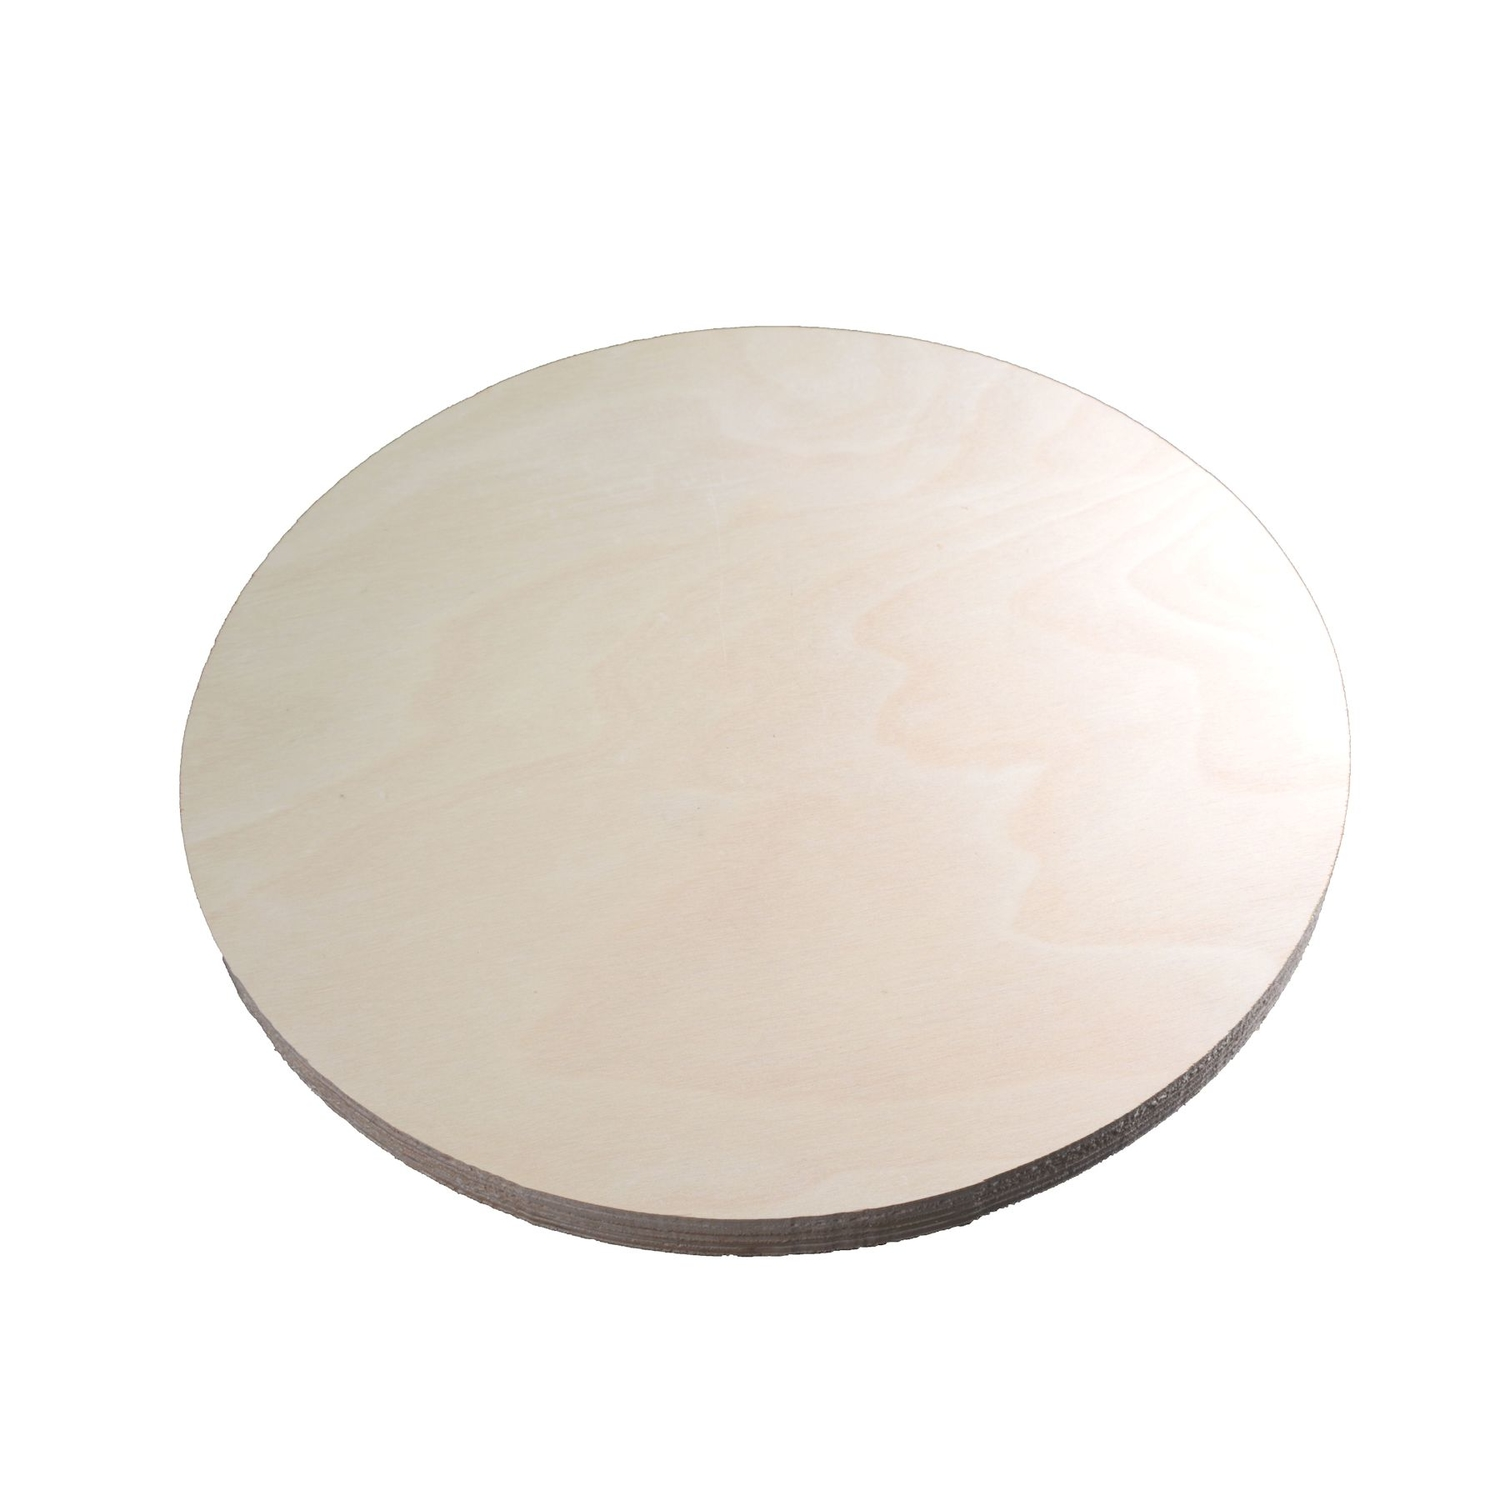 Round Table Tops American Wood Round Plywood For Round Table Tops 11 3 4 X 3 4